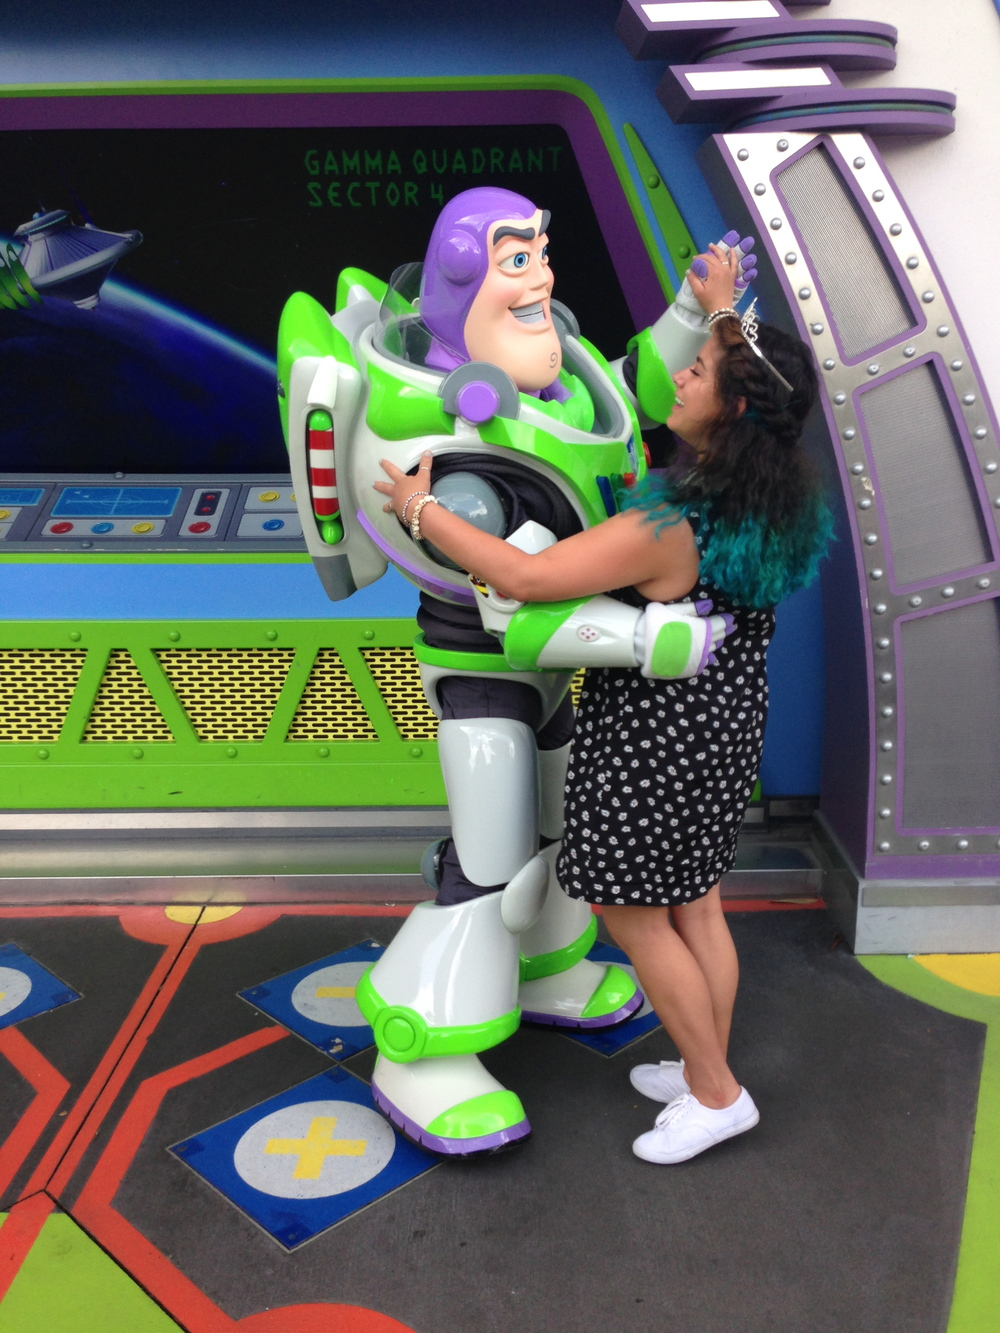 Our date is on Saturday. i'm not sure if Buzz took a shine to me OR if he just  really  wanted to dance.